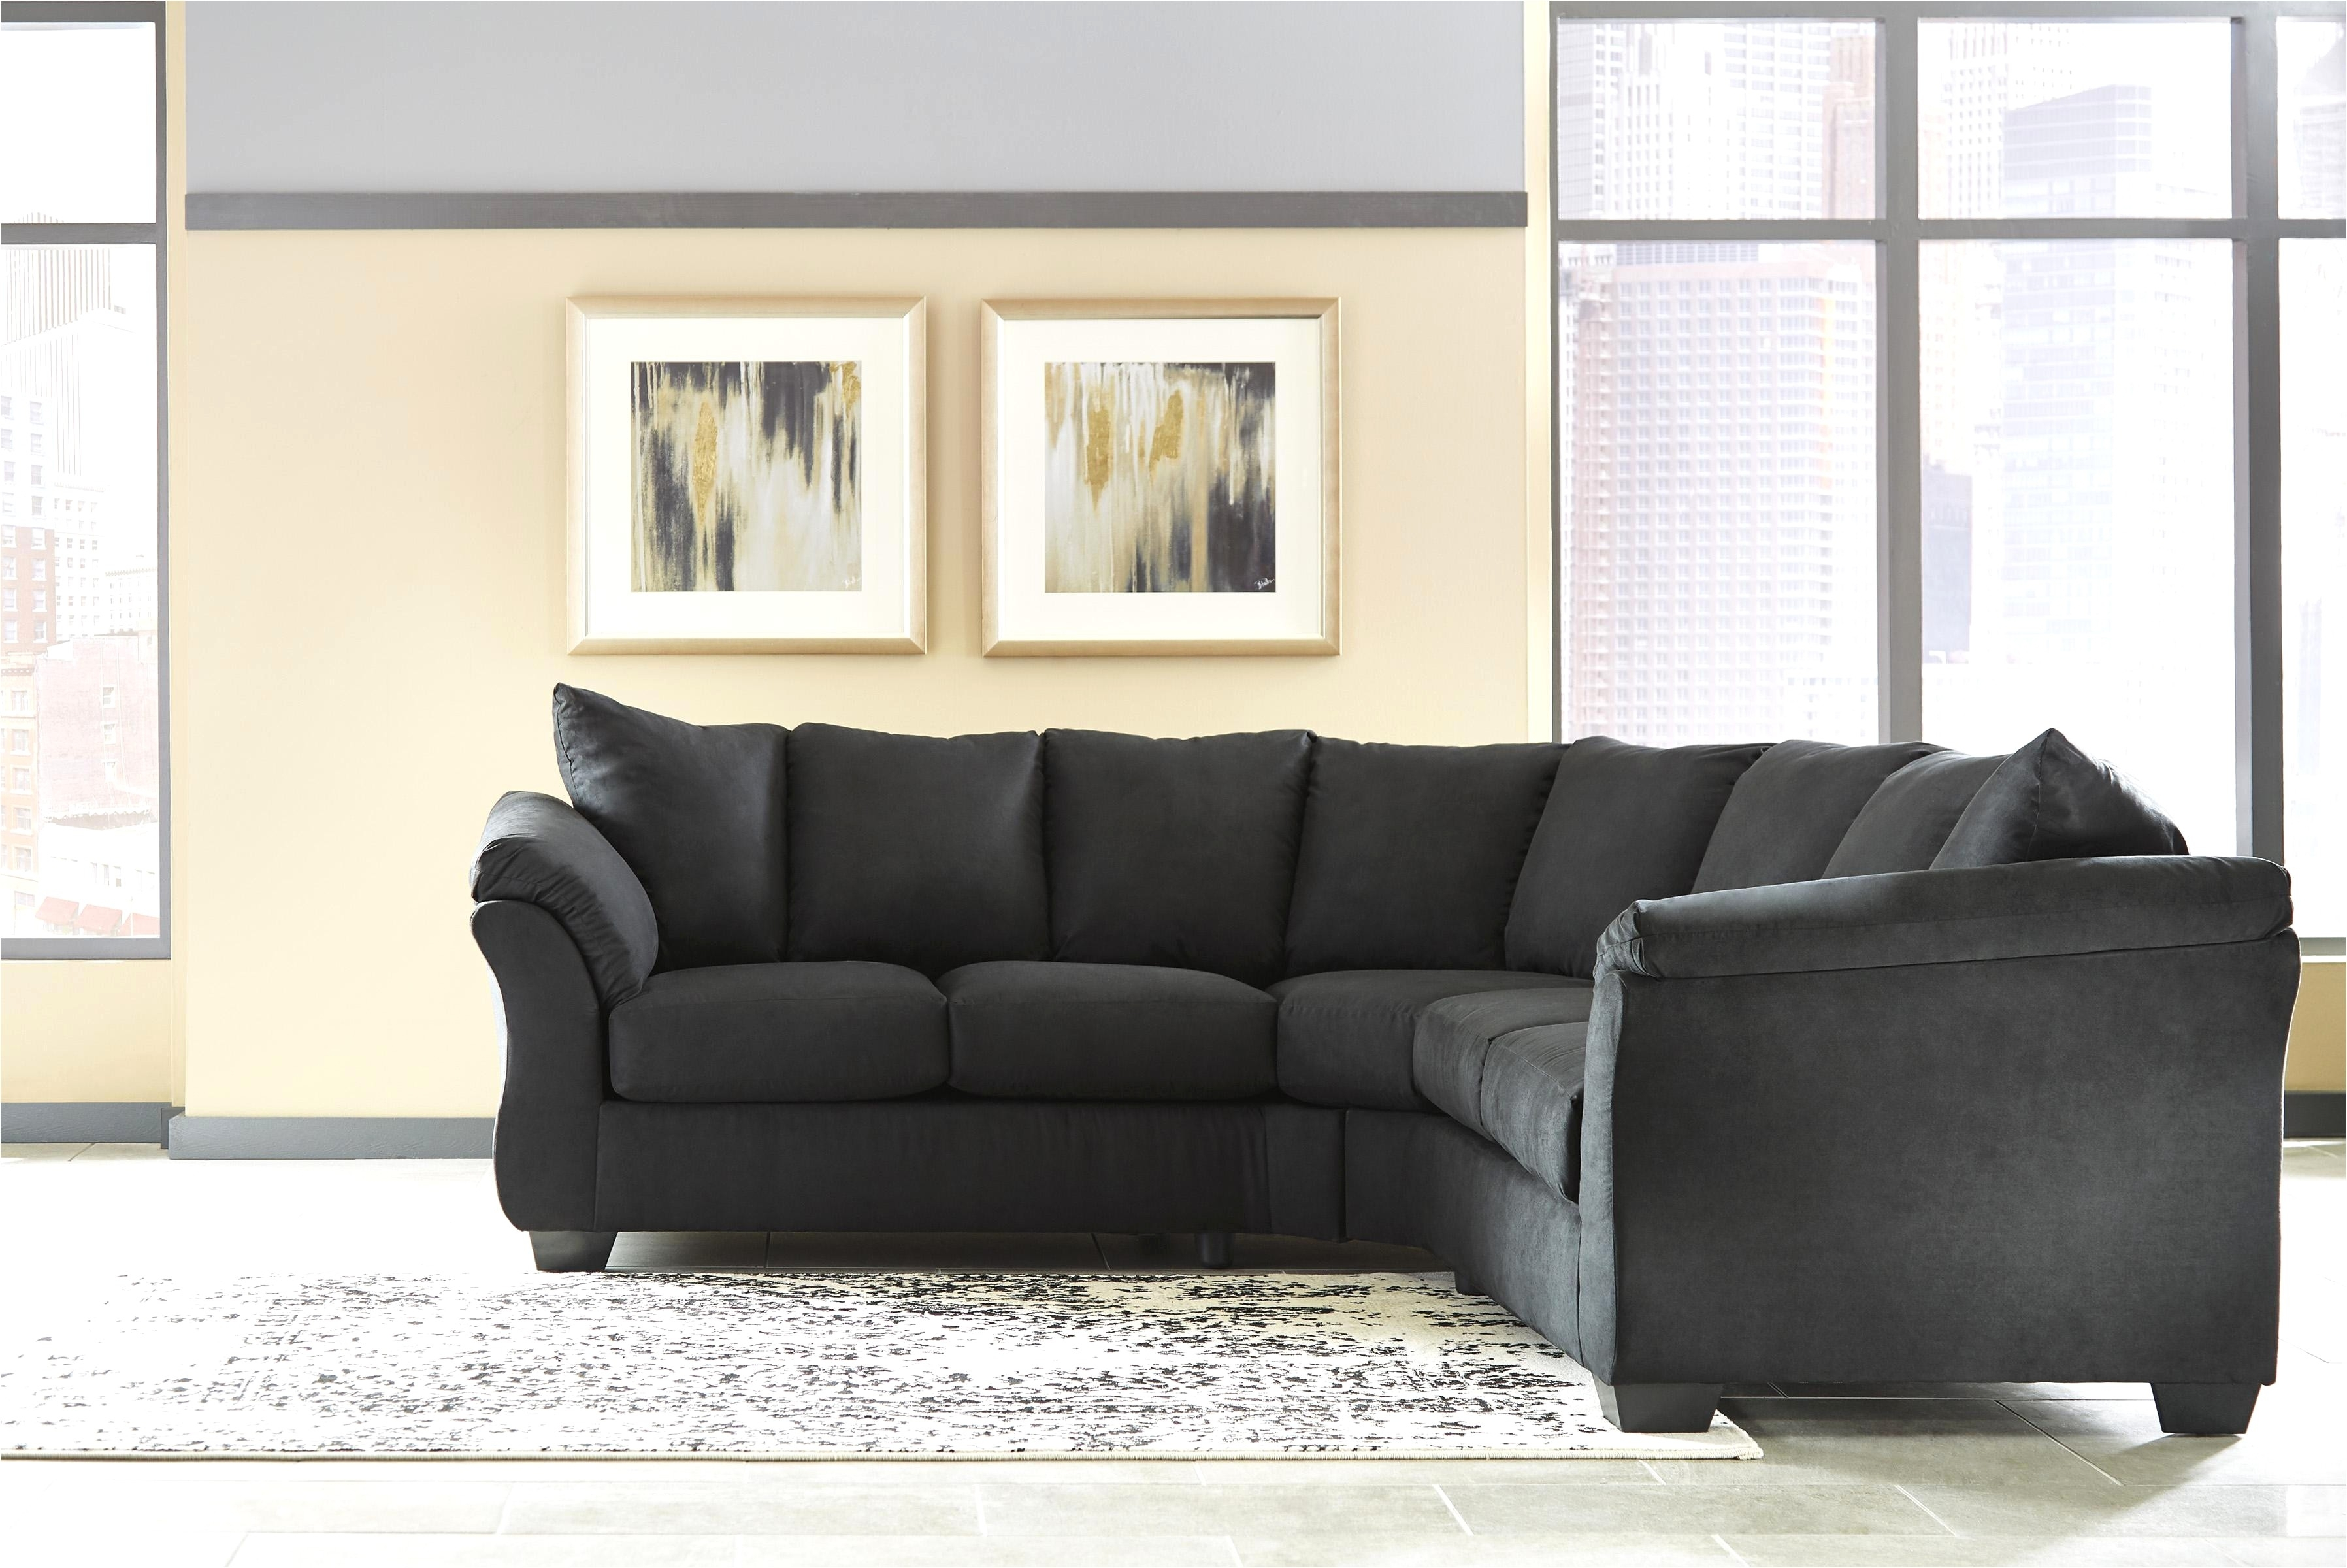 Best Rated Sectional Sleeper Sofas | Homelivingroom.co throughout Arrowmask 2 Piece Sectionals With Raf Chaise (Image 7 of 30)